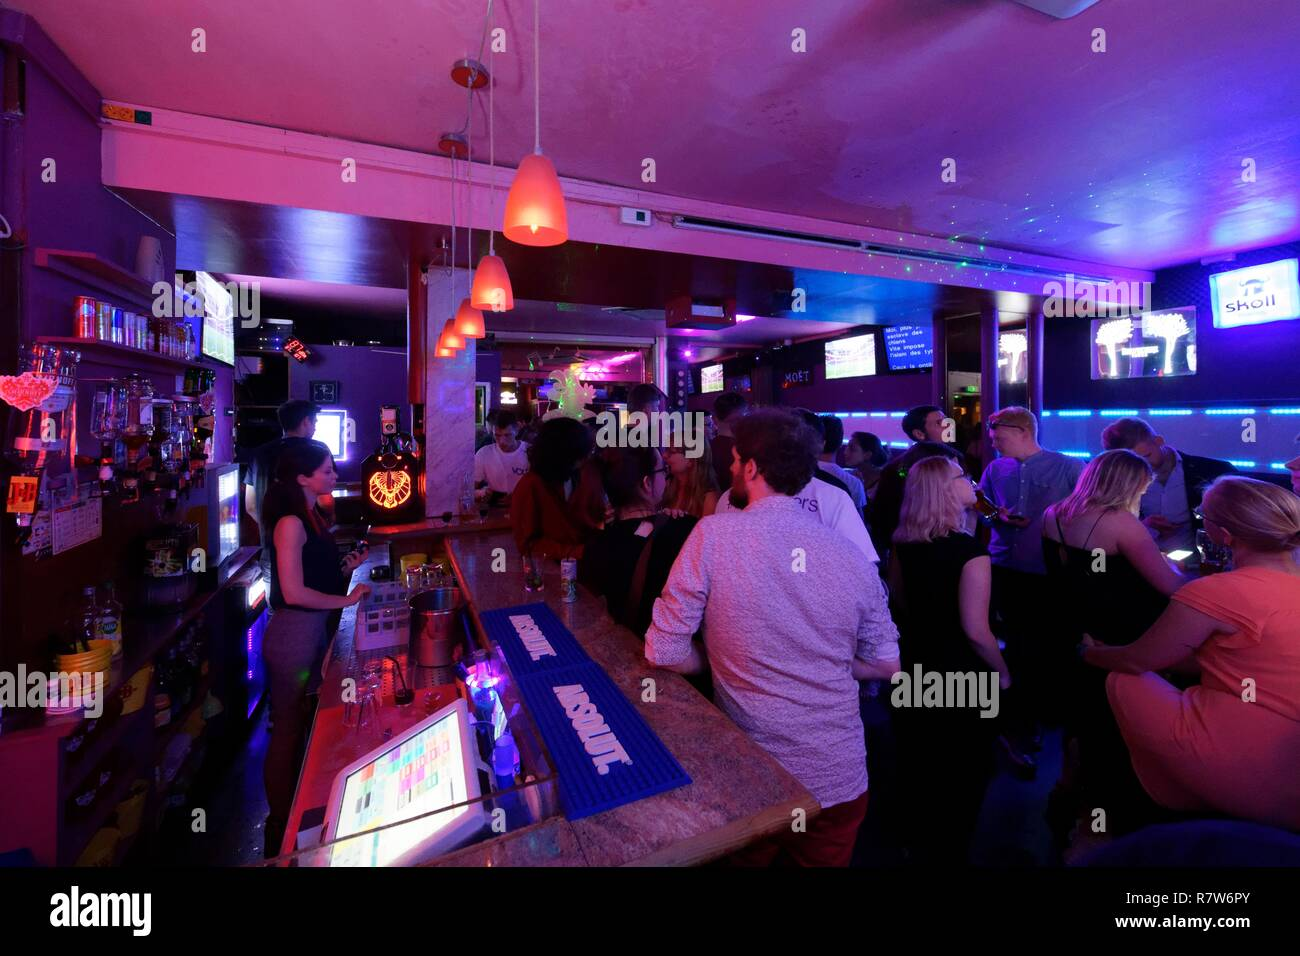 France, Bas Rhin, Strasbourg, old town listed as World Heritage by UNESCO, Bunny's karaoke bar, 1, rue de l'Epine - Stock Image